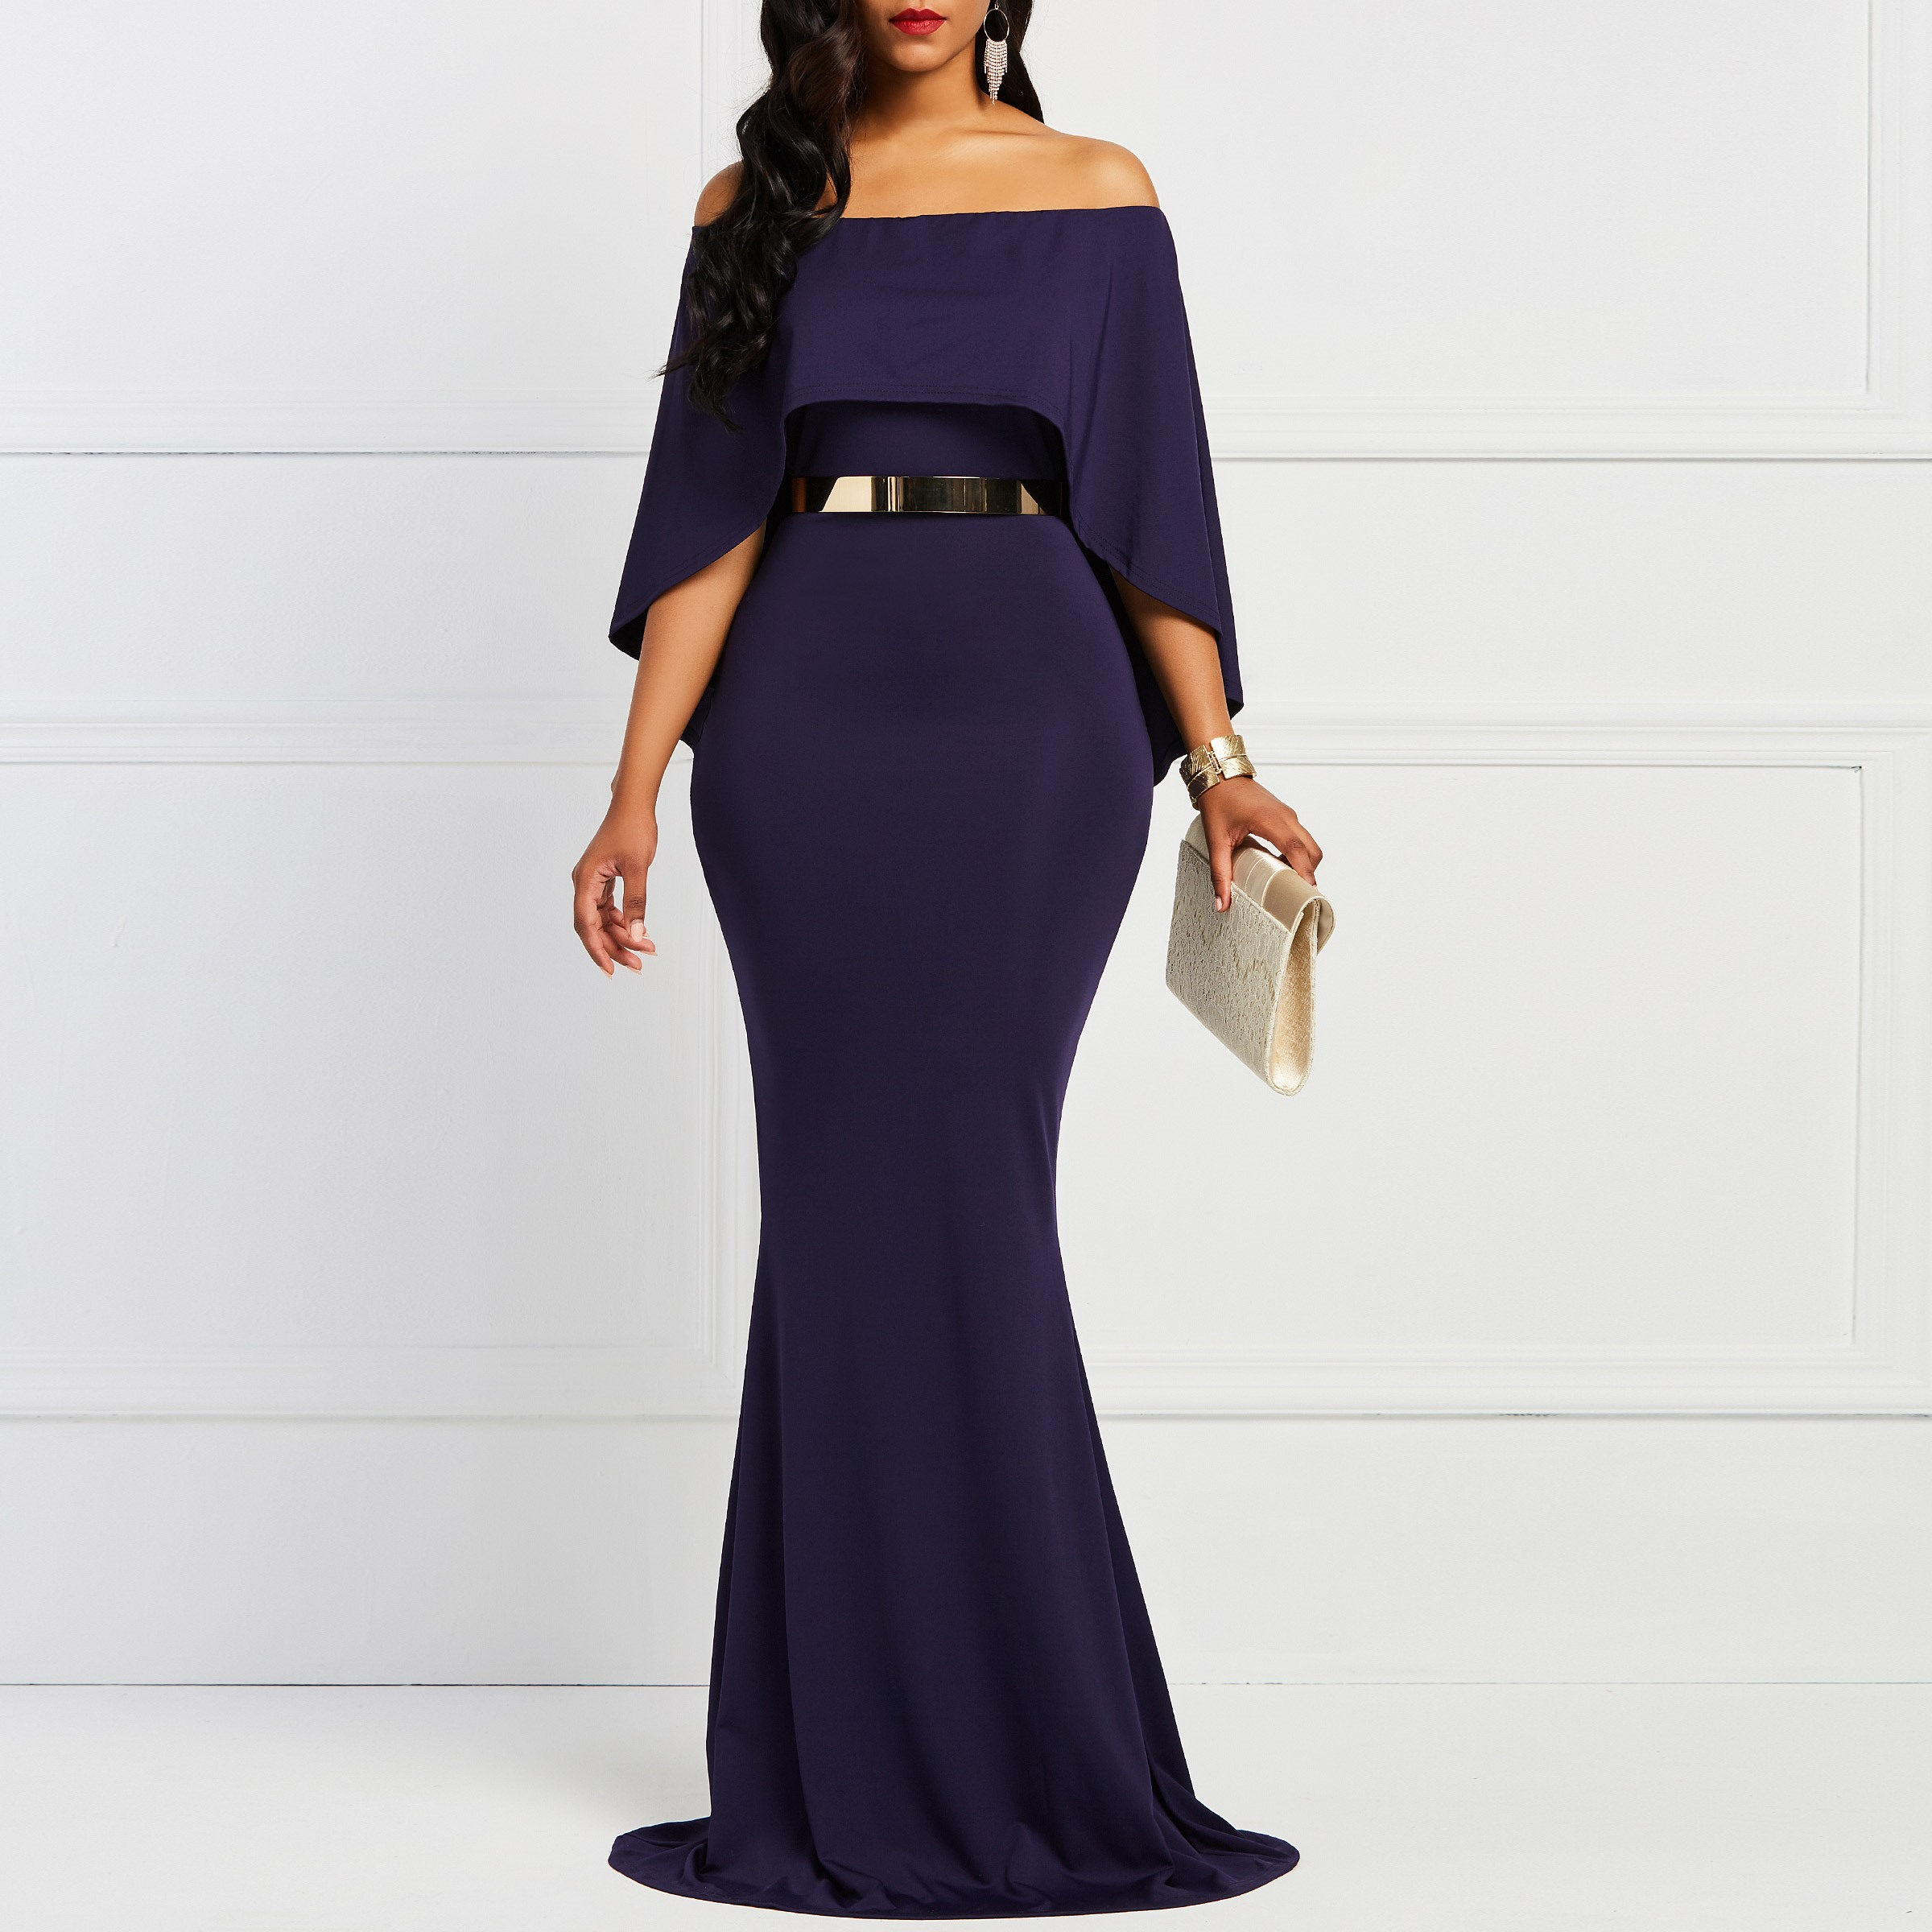 Christmas Dinner Dresses.Us 18 7 56 Off Batwing Sleeve Bodycon Slash Neck Women S Dress Navy Elegany Trumpet Evening Party Christmas Dinner Floor Length Maxi Dresses In